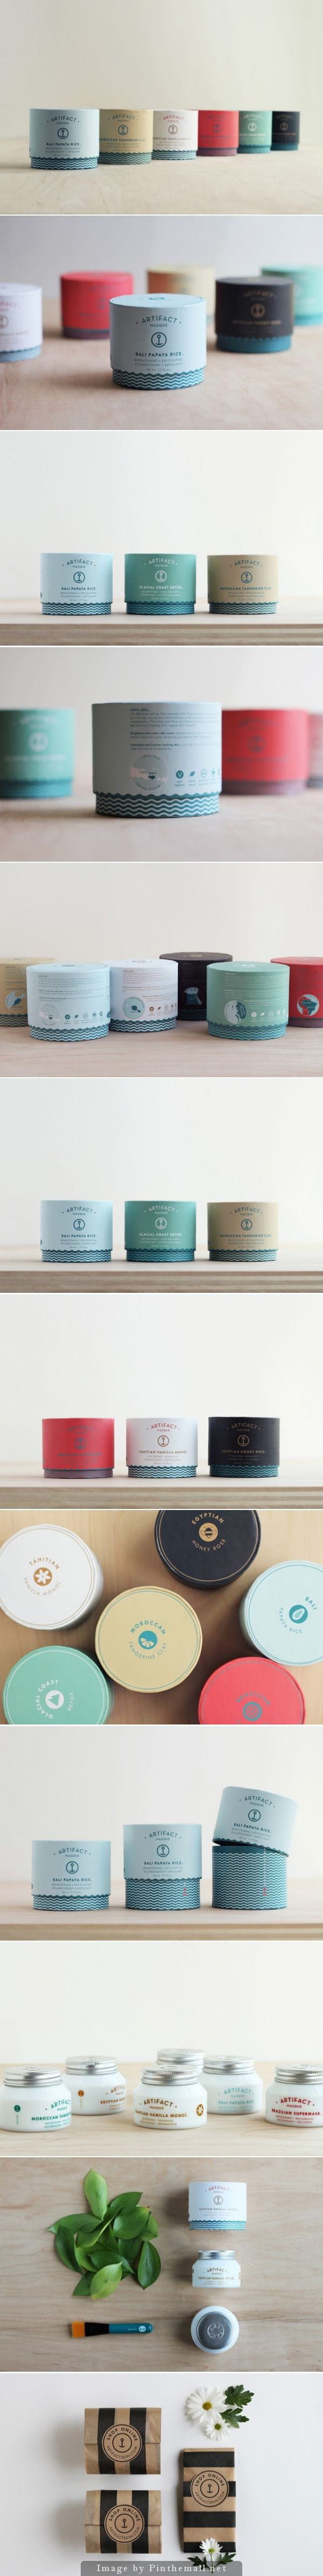 We love the simplicity of this package design. The color palette works beautifully together and we love the hidden illustration  revealed when users lift the top!